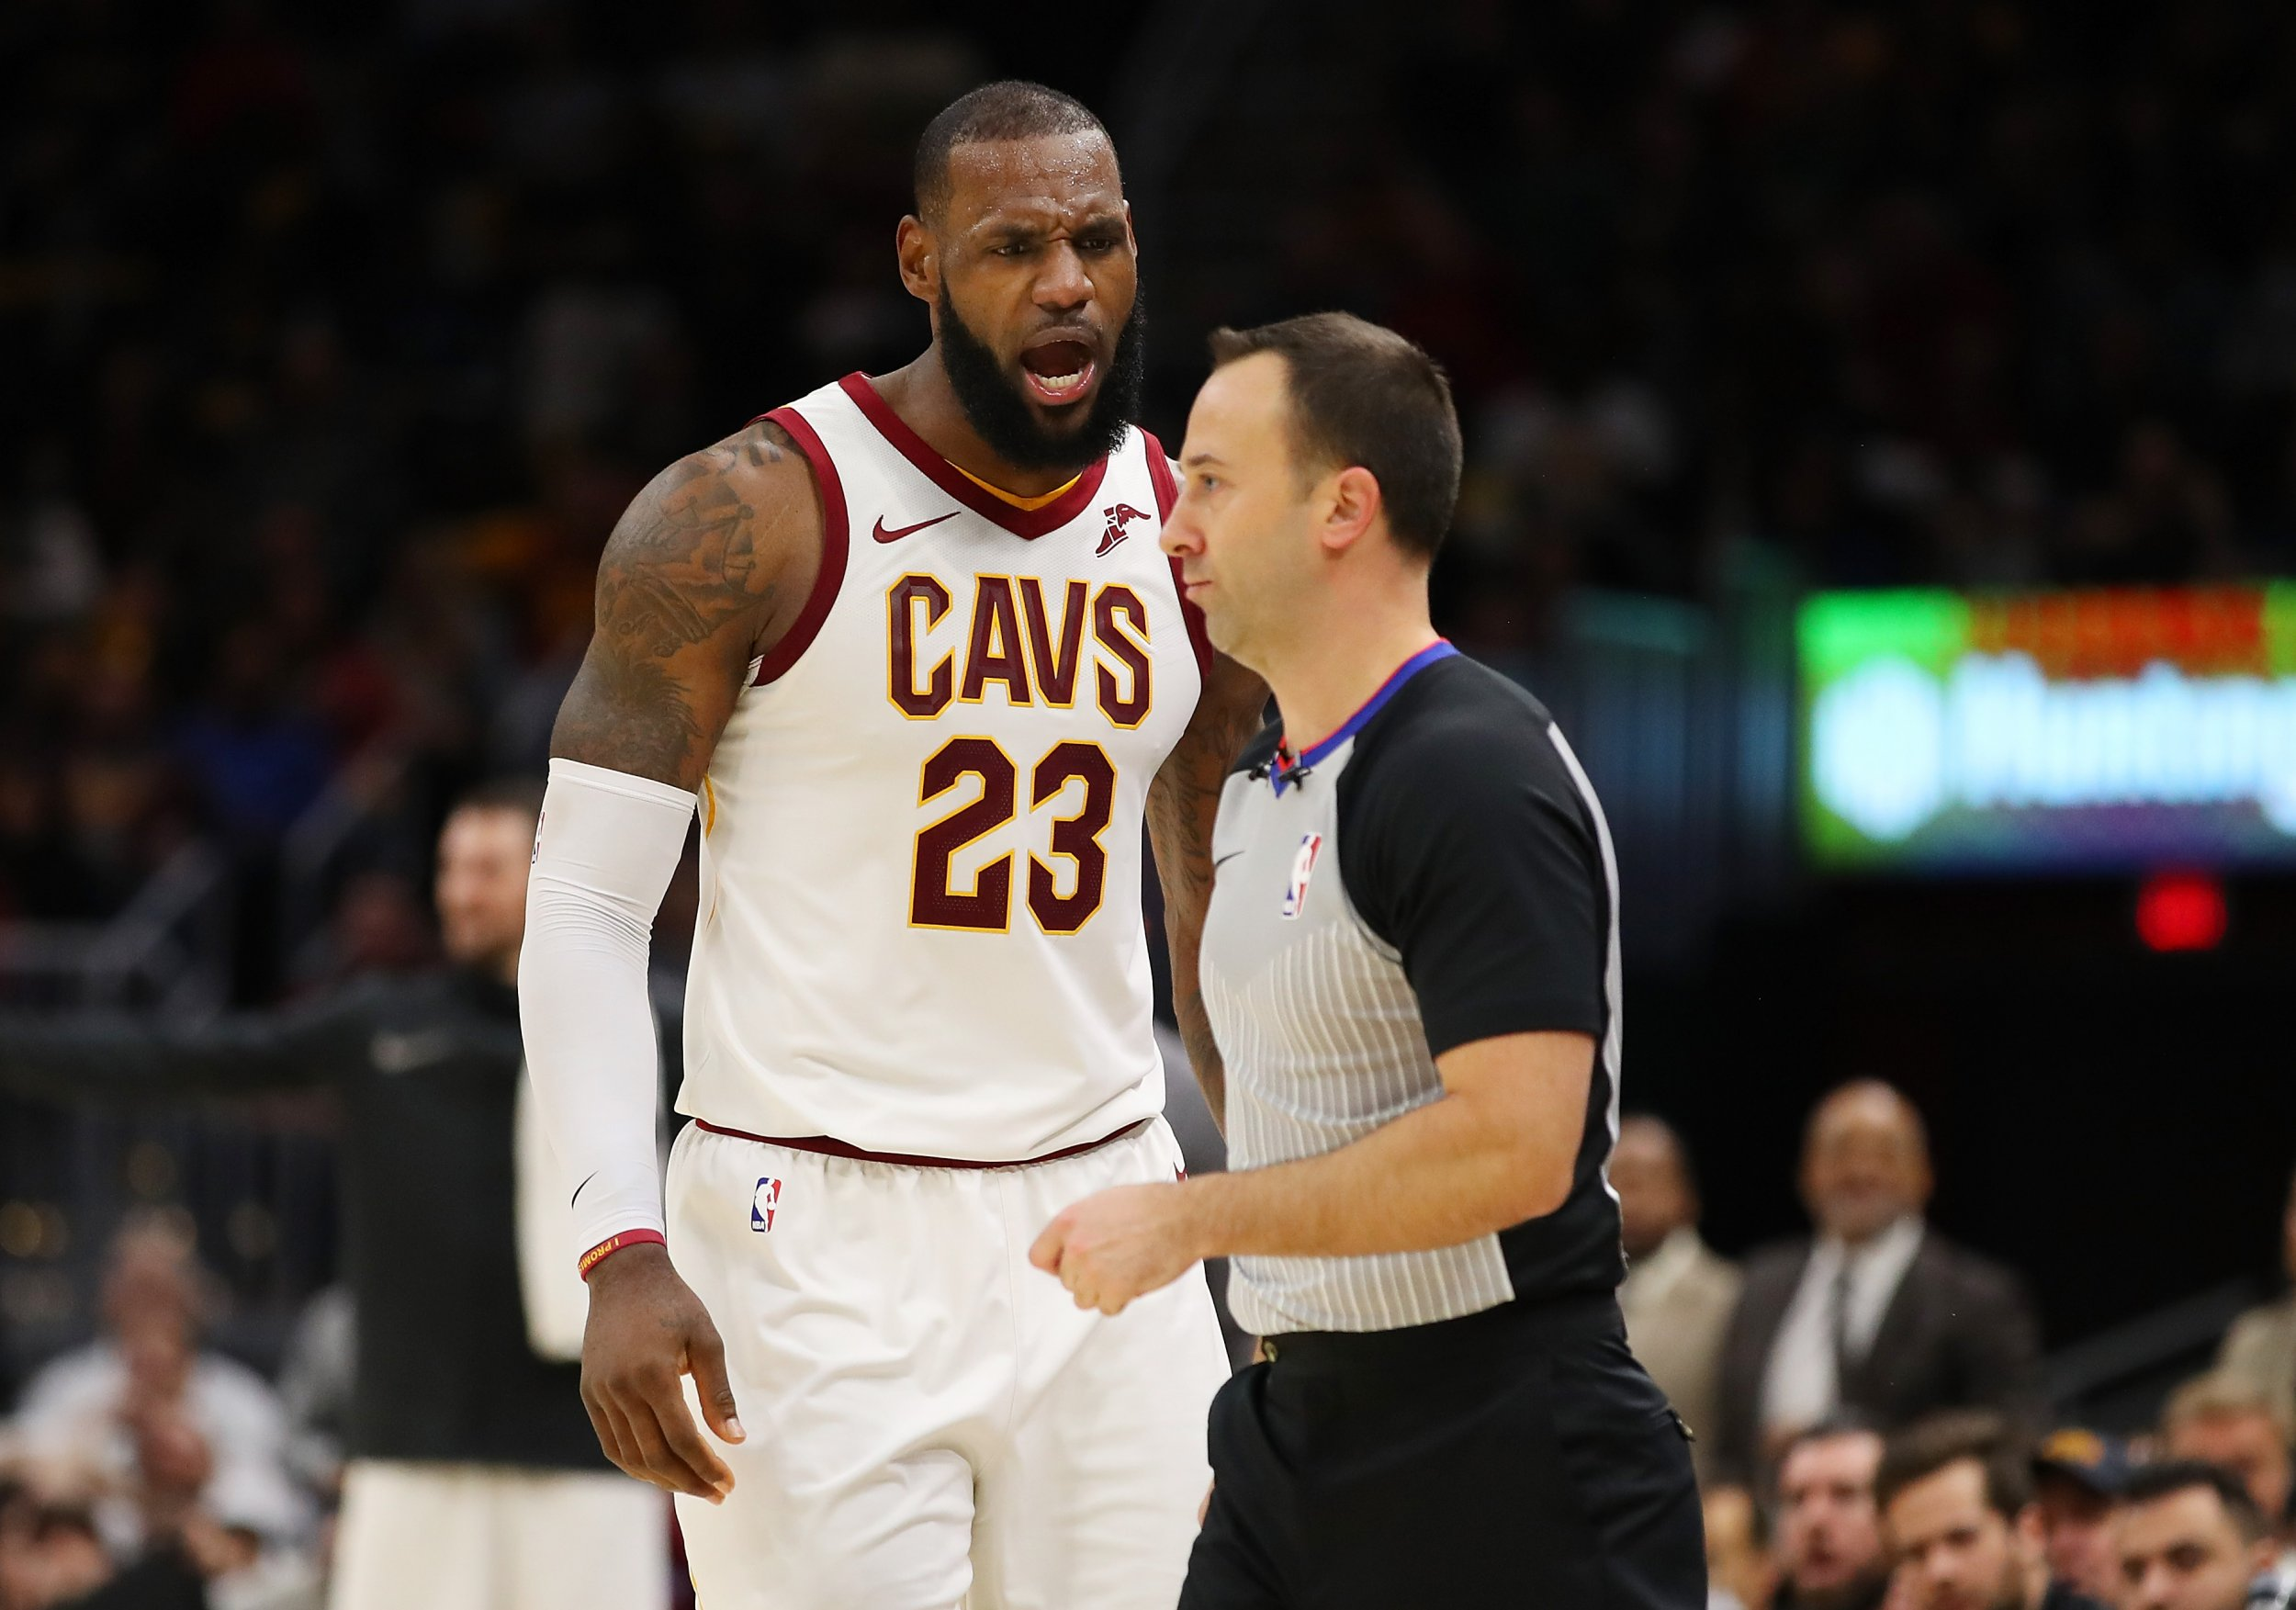 Video: Did LeBron James Deserve Ejection From Cavaliers ...